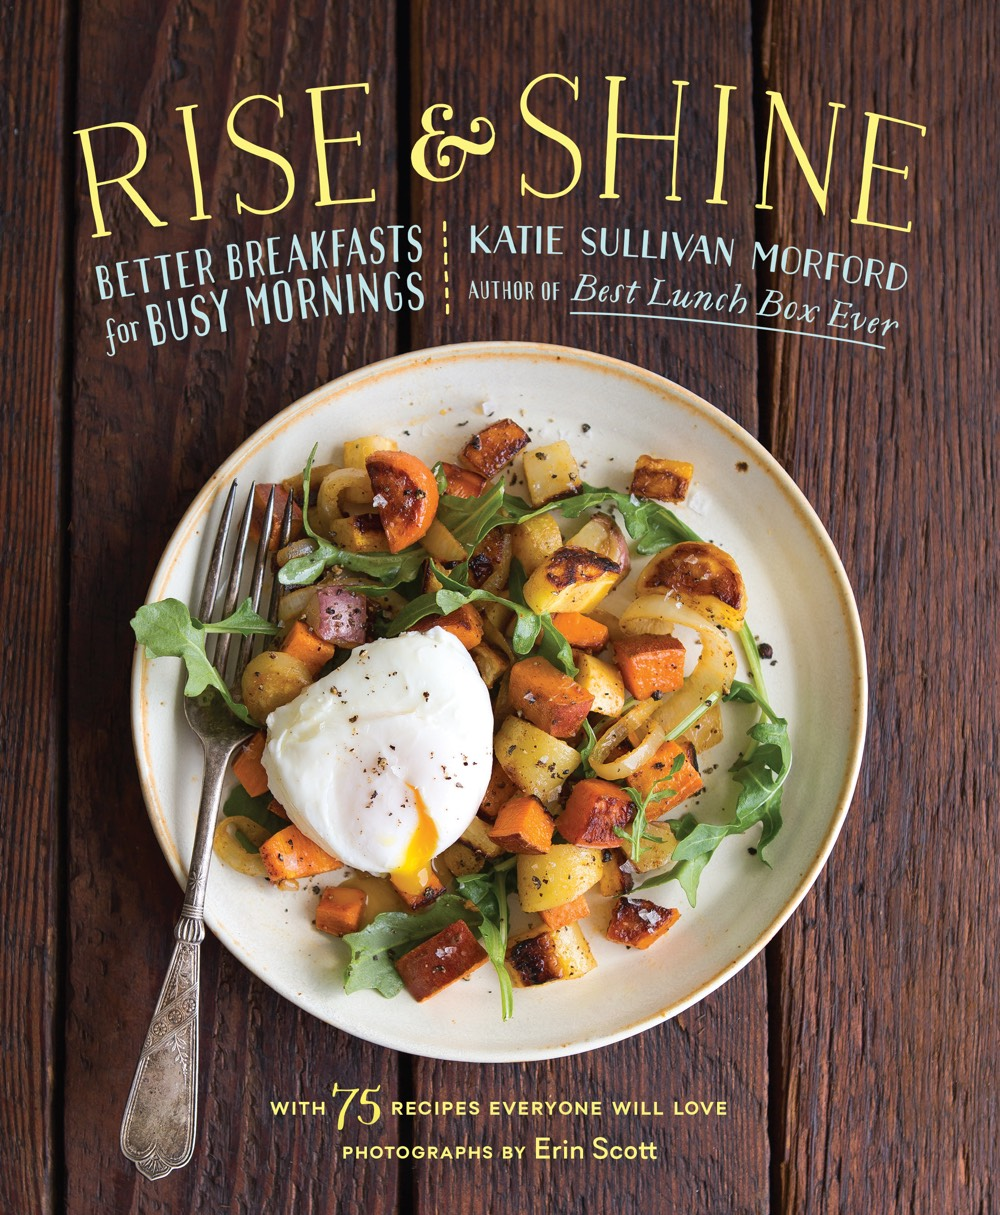 Rise and Shine Cookbook Giveaway from weelicious.com